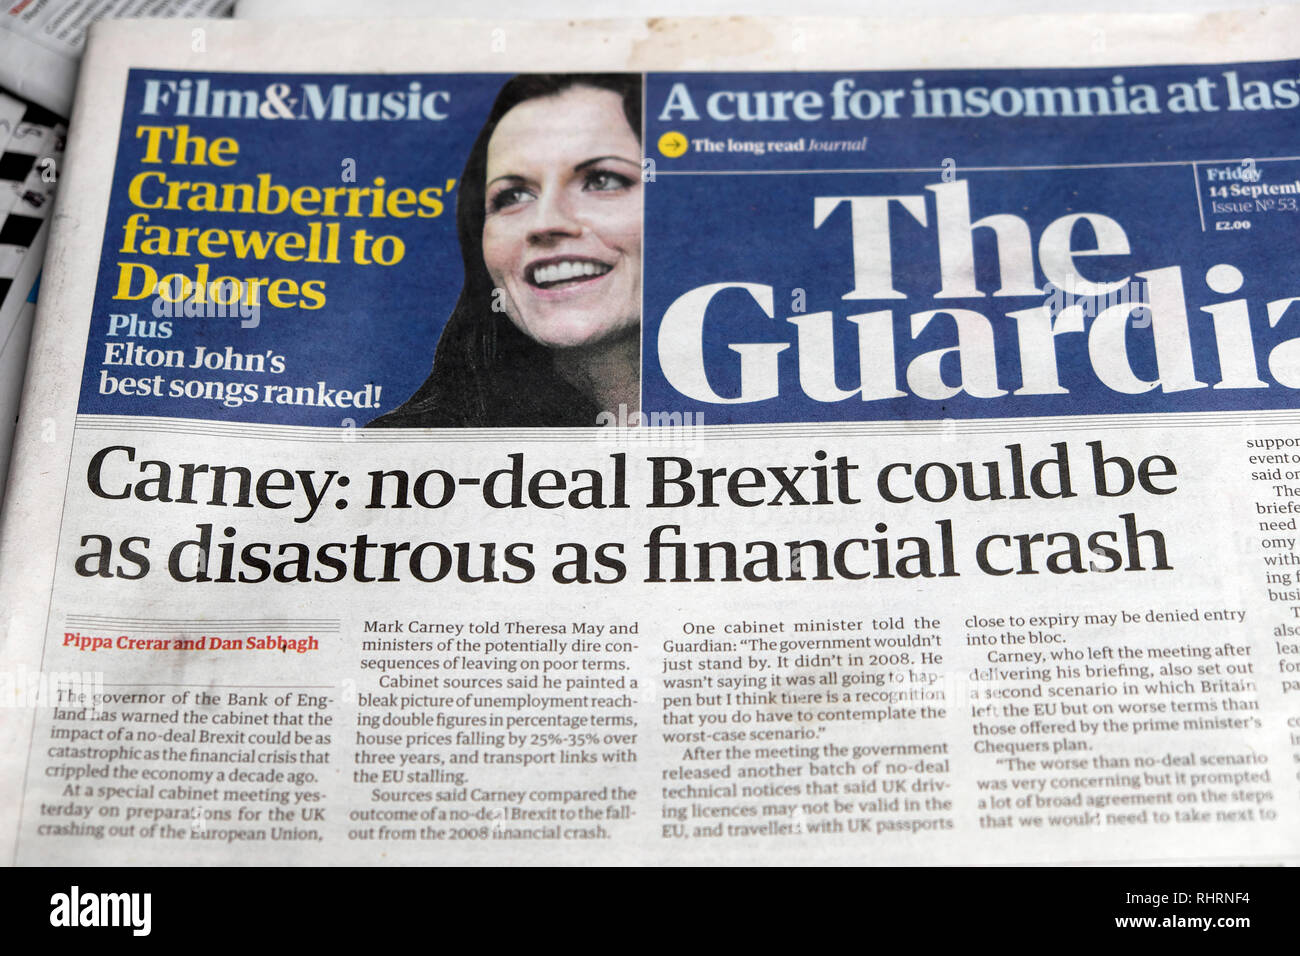 'Carney' no-deal Brexit could be as disastrous as financial crash' front page headline in Guardian newspaper London England UK September 2018 - Stock Image